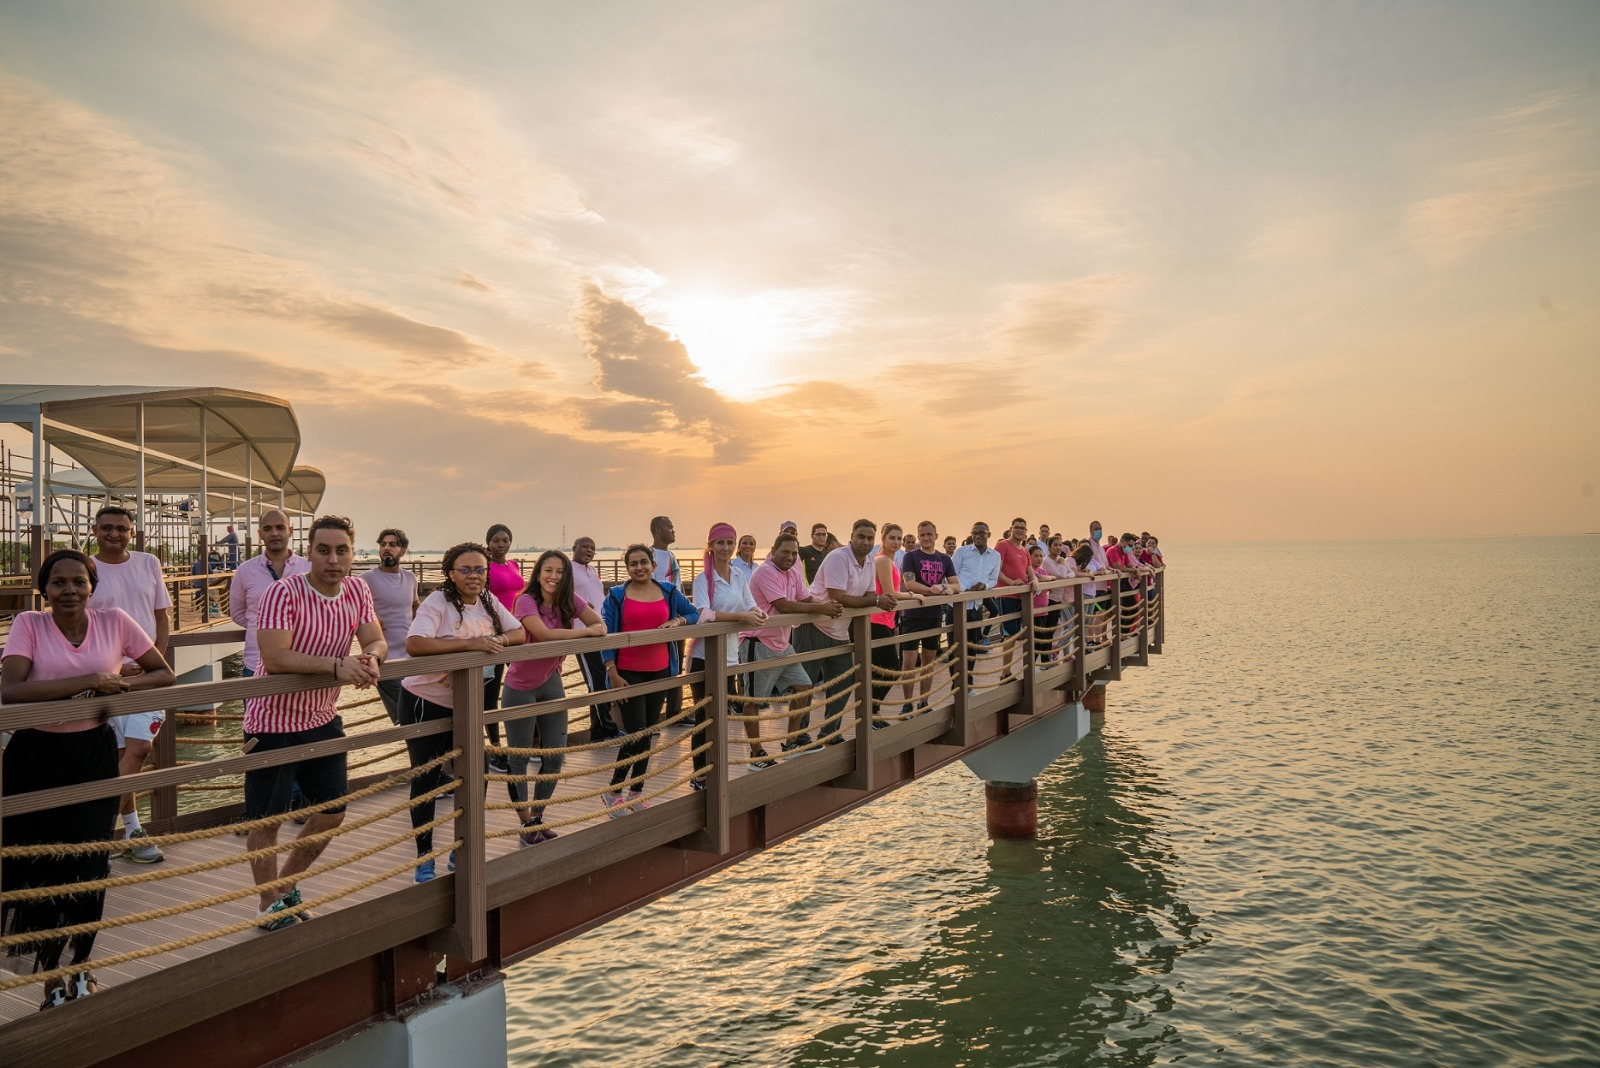 CORPORATE WELLNESS, A PRIORITY AT ZULAL WELLNESS RESORT